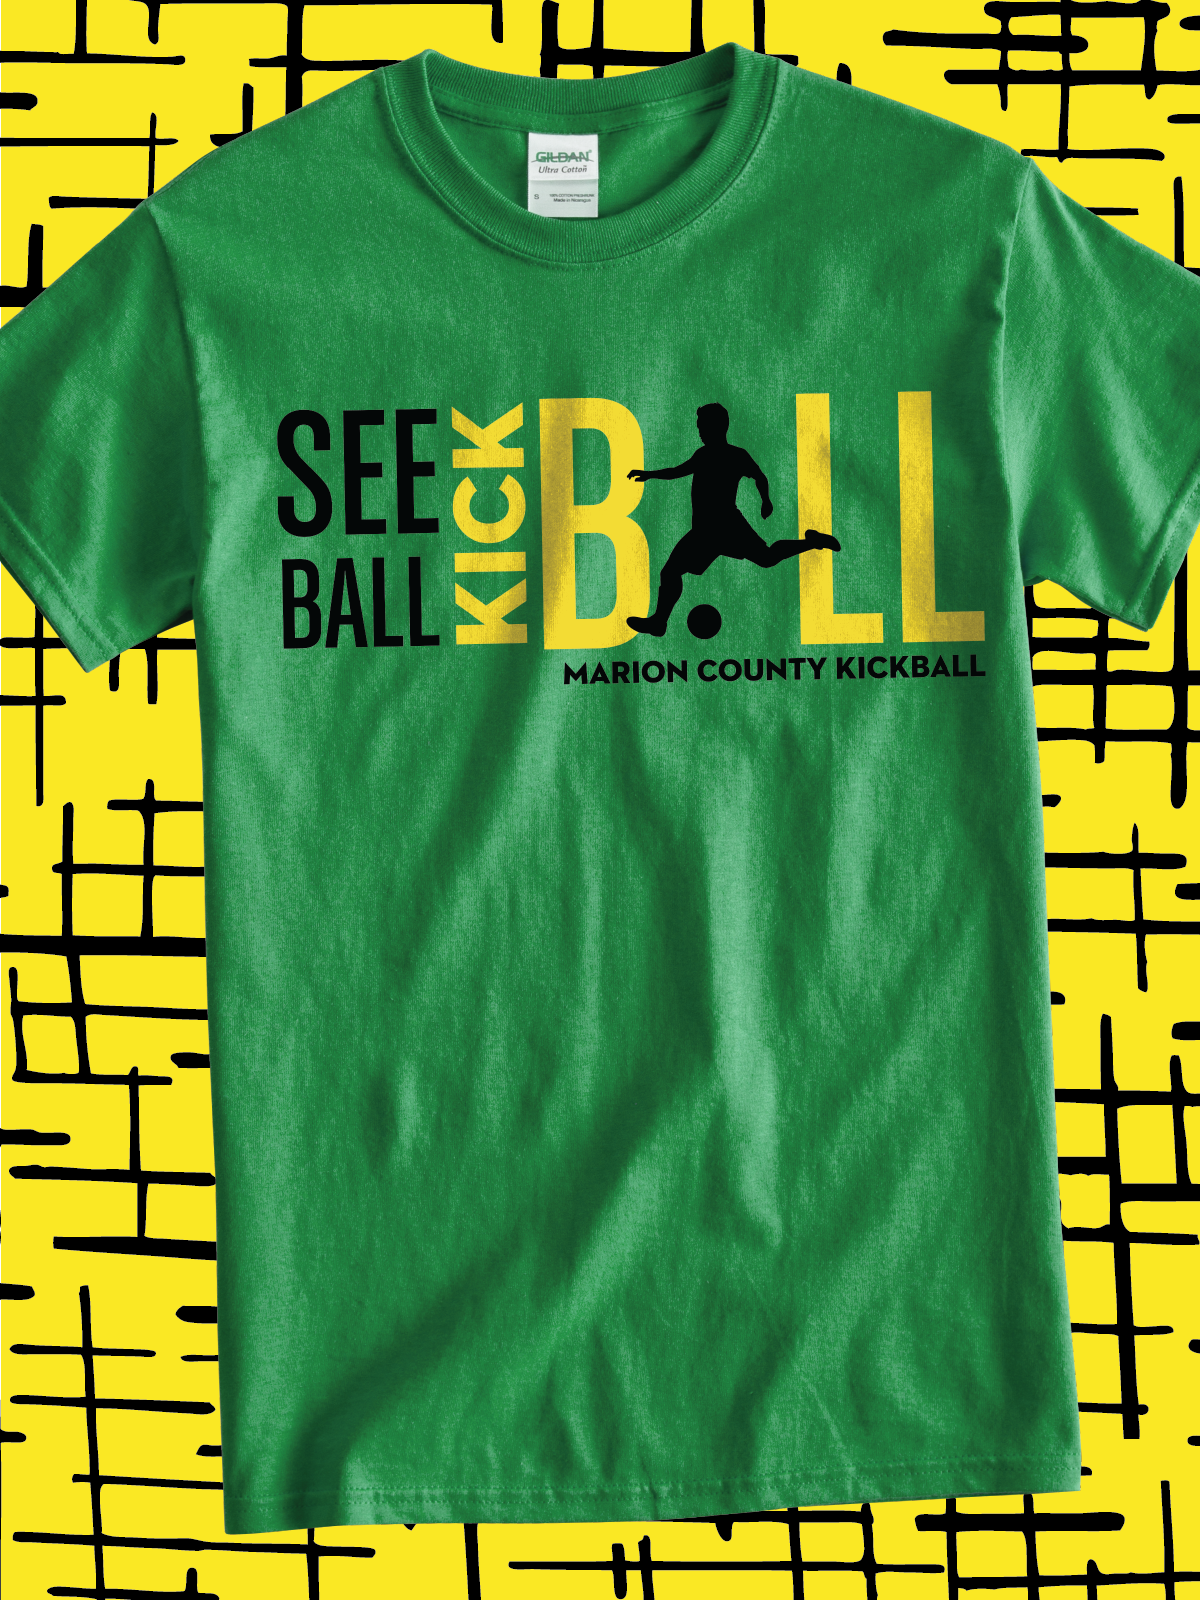 See Ball Kick Ball Funny Design Idea For Custom Kickball Or Soccer